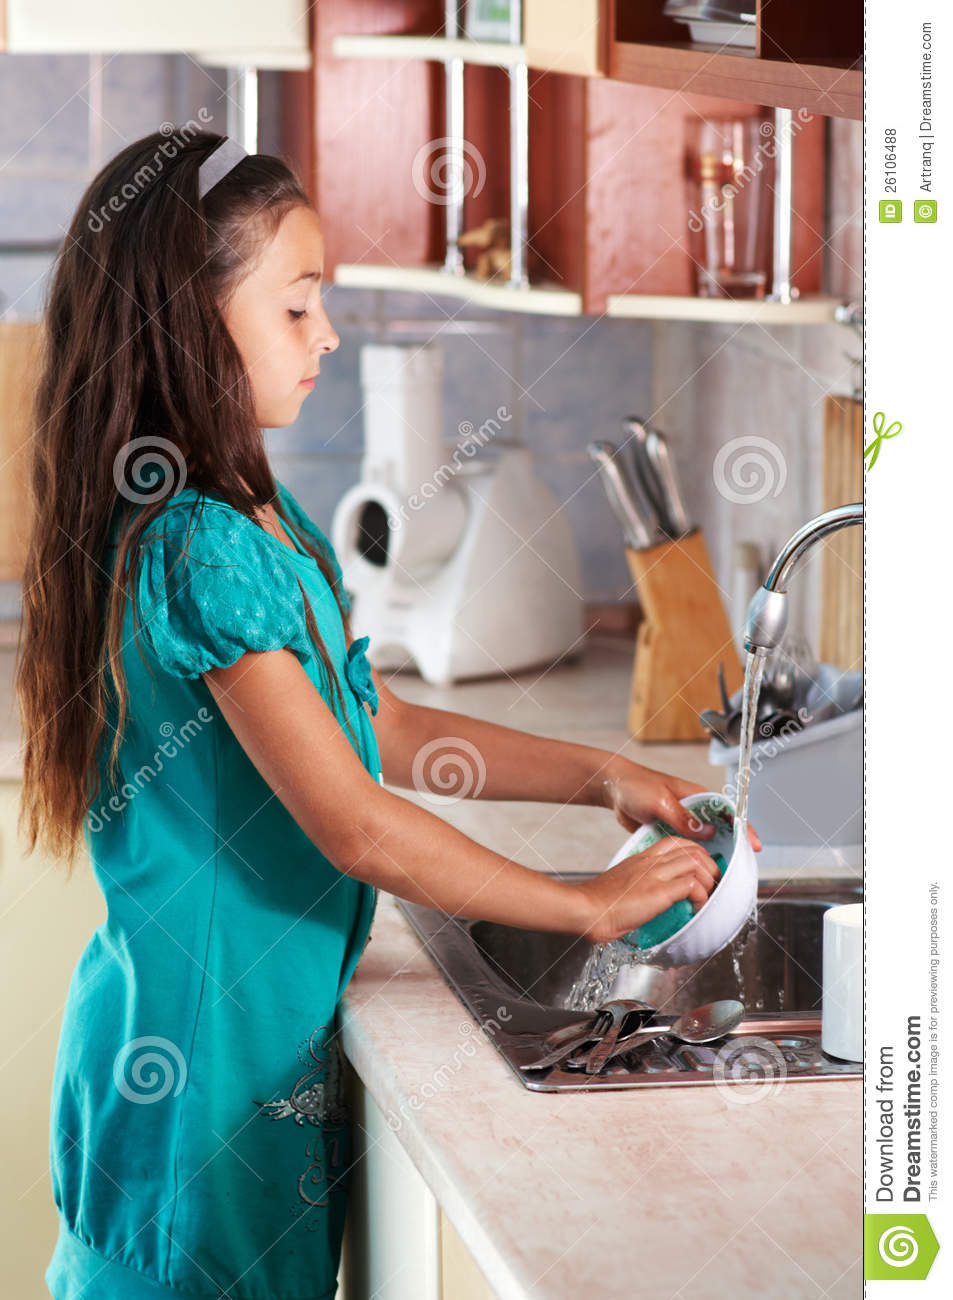 Girl Washing Dishes In The Kitchen Royalty Free Stock